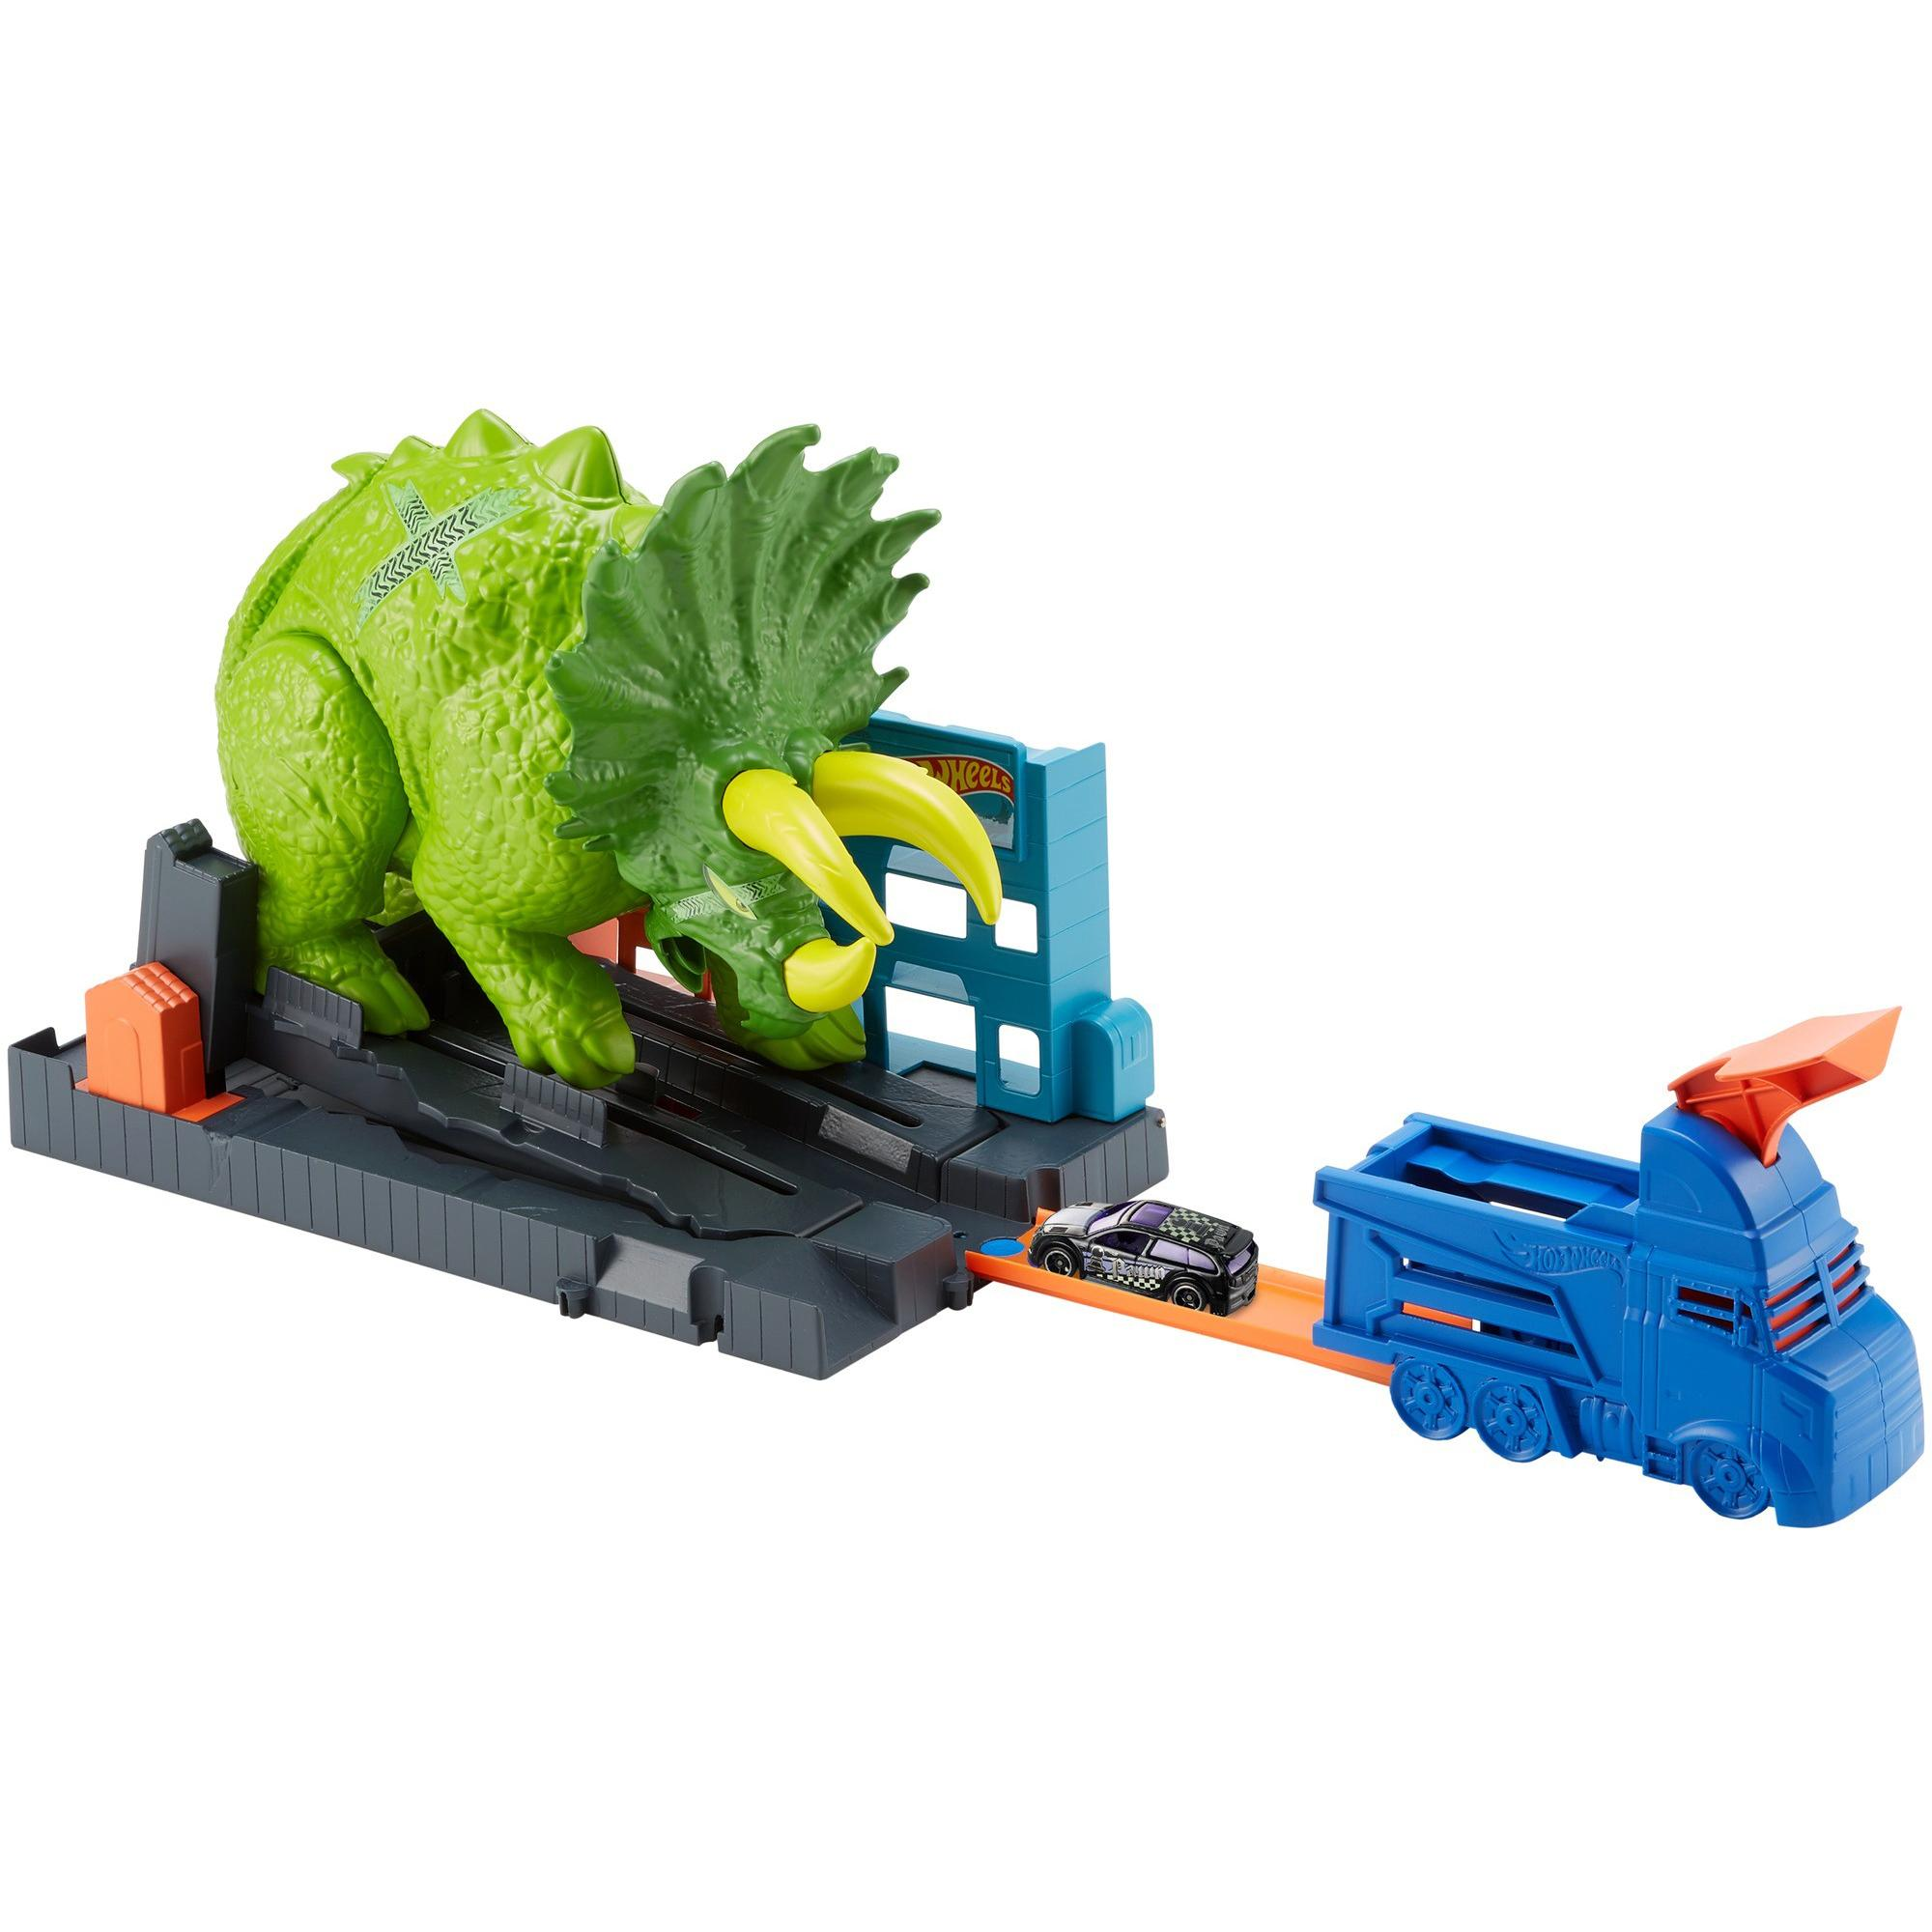 Hot Wheels Smashin' Triceratops Destructive Dino Playset